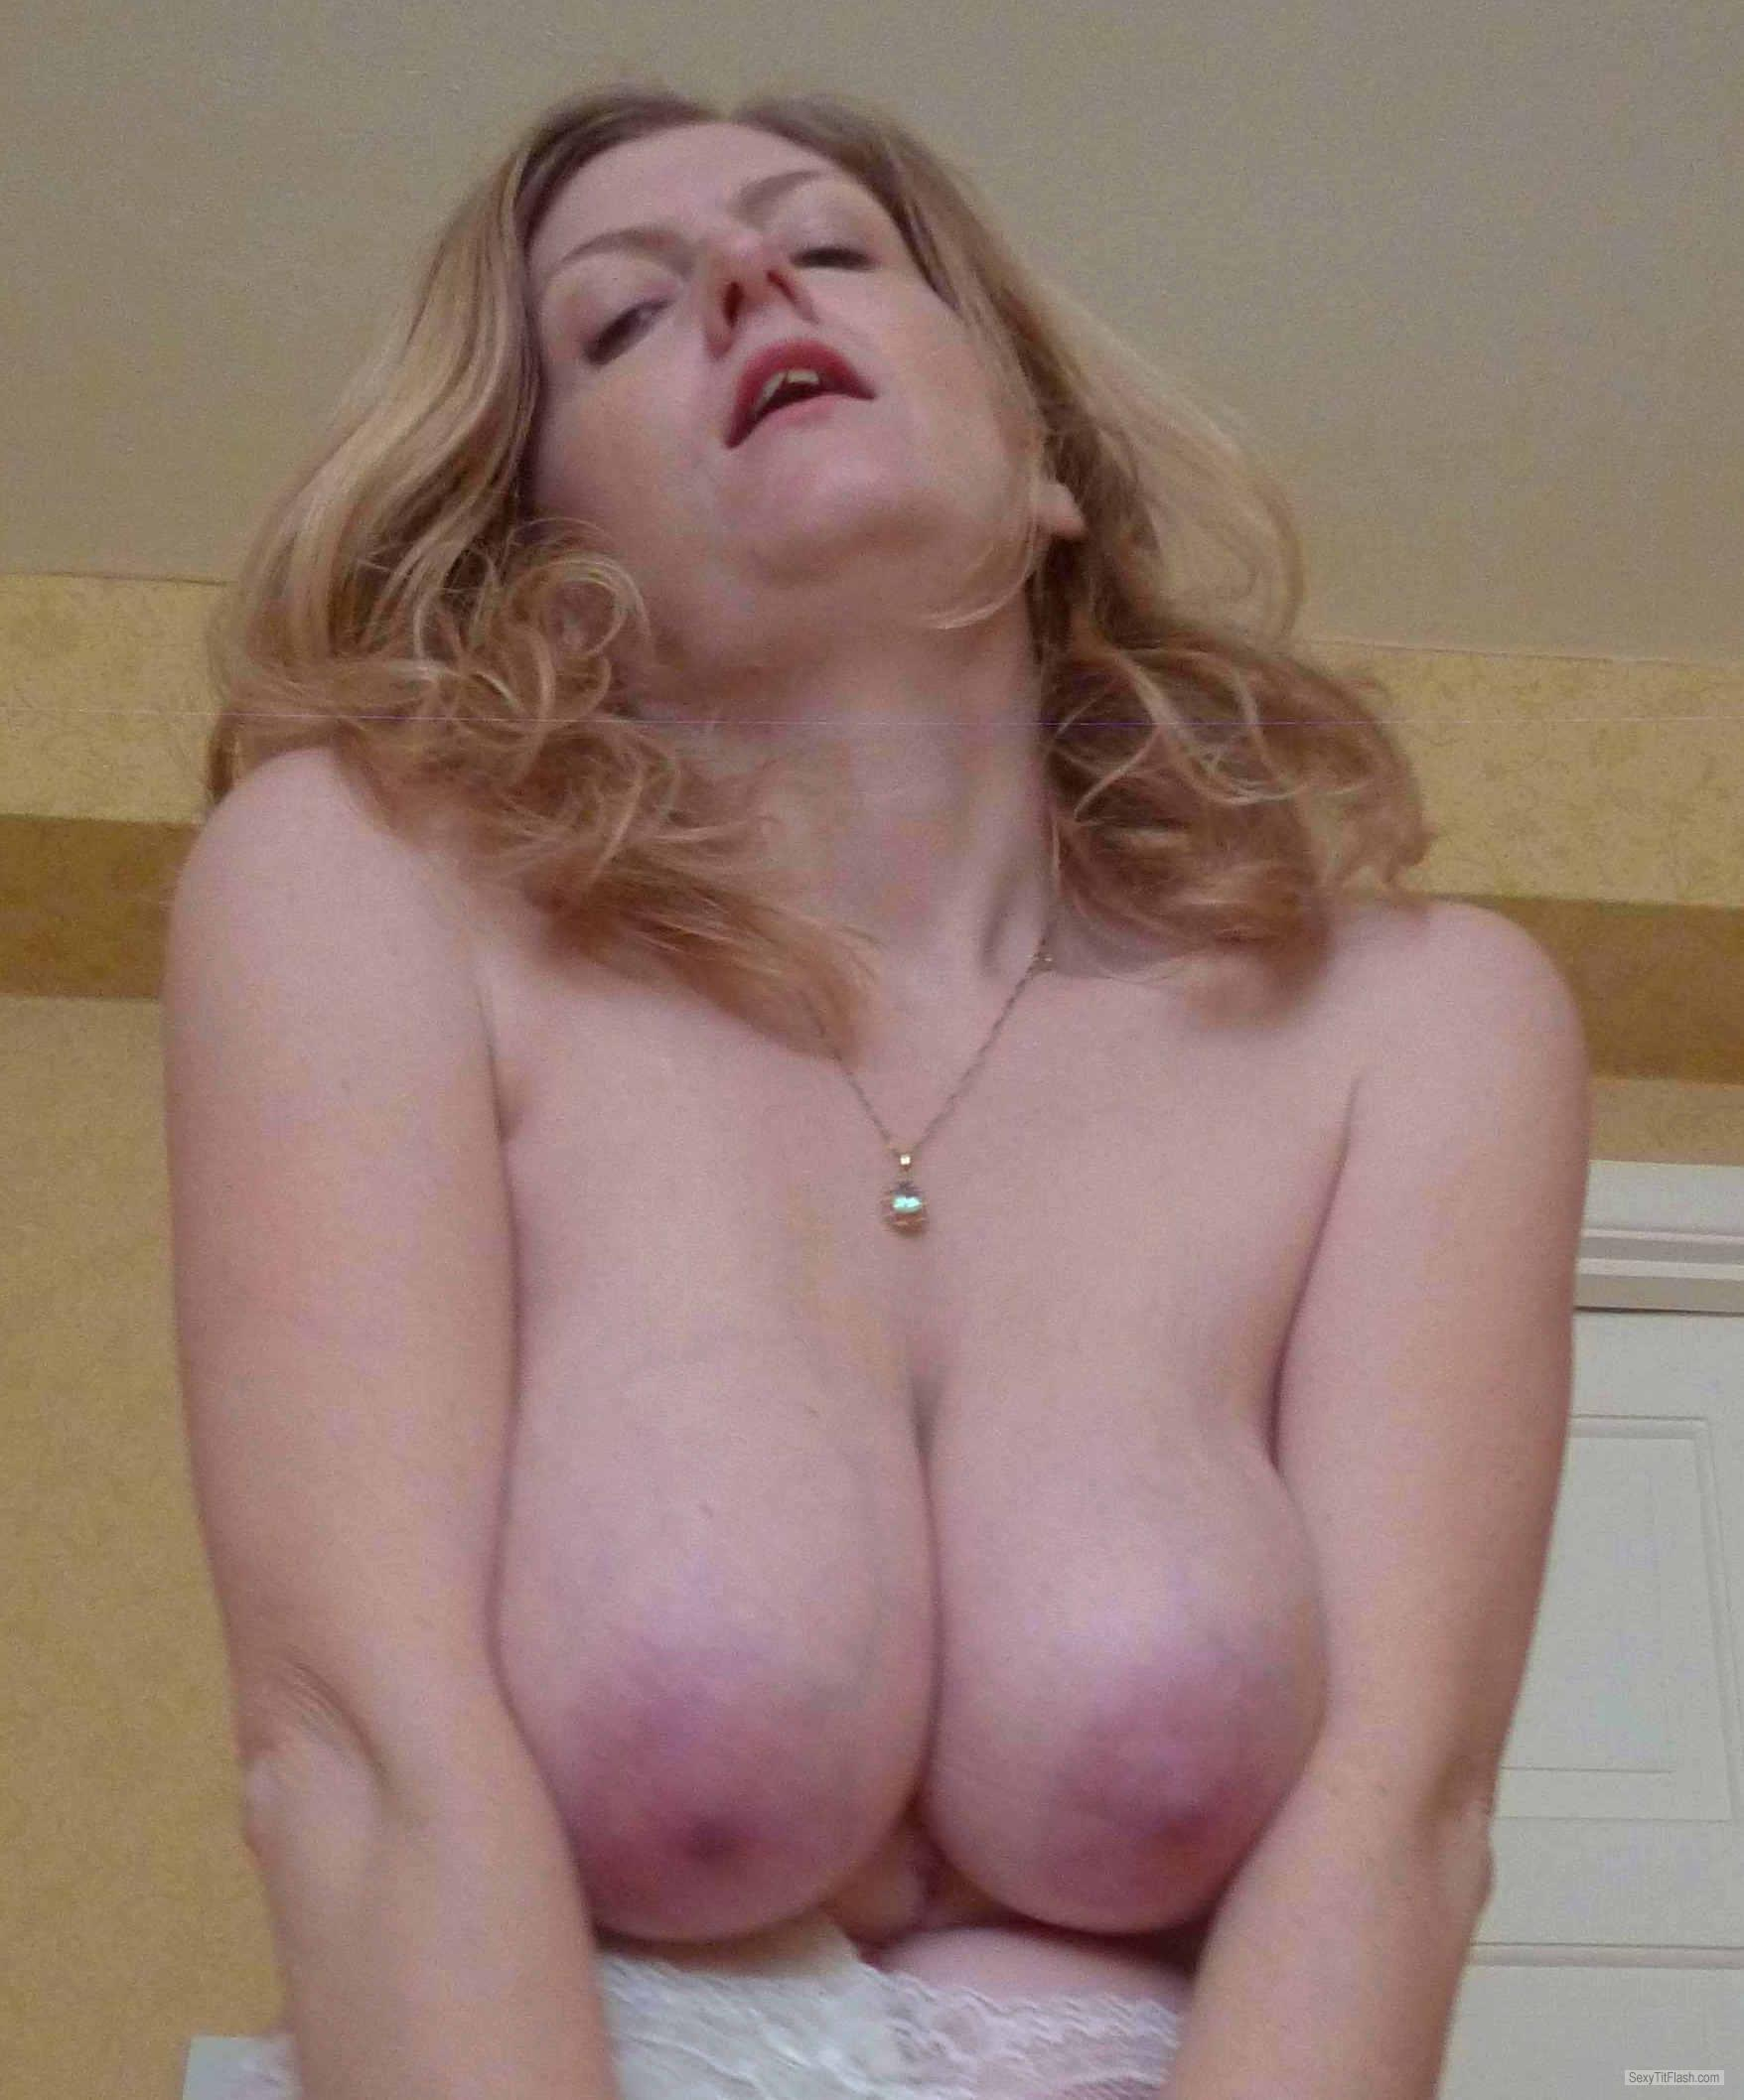 Extremely big Tits Of My Wife Topless Uktart